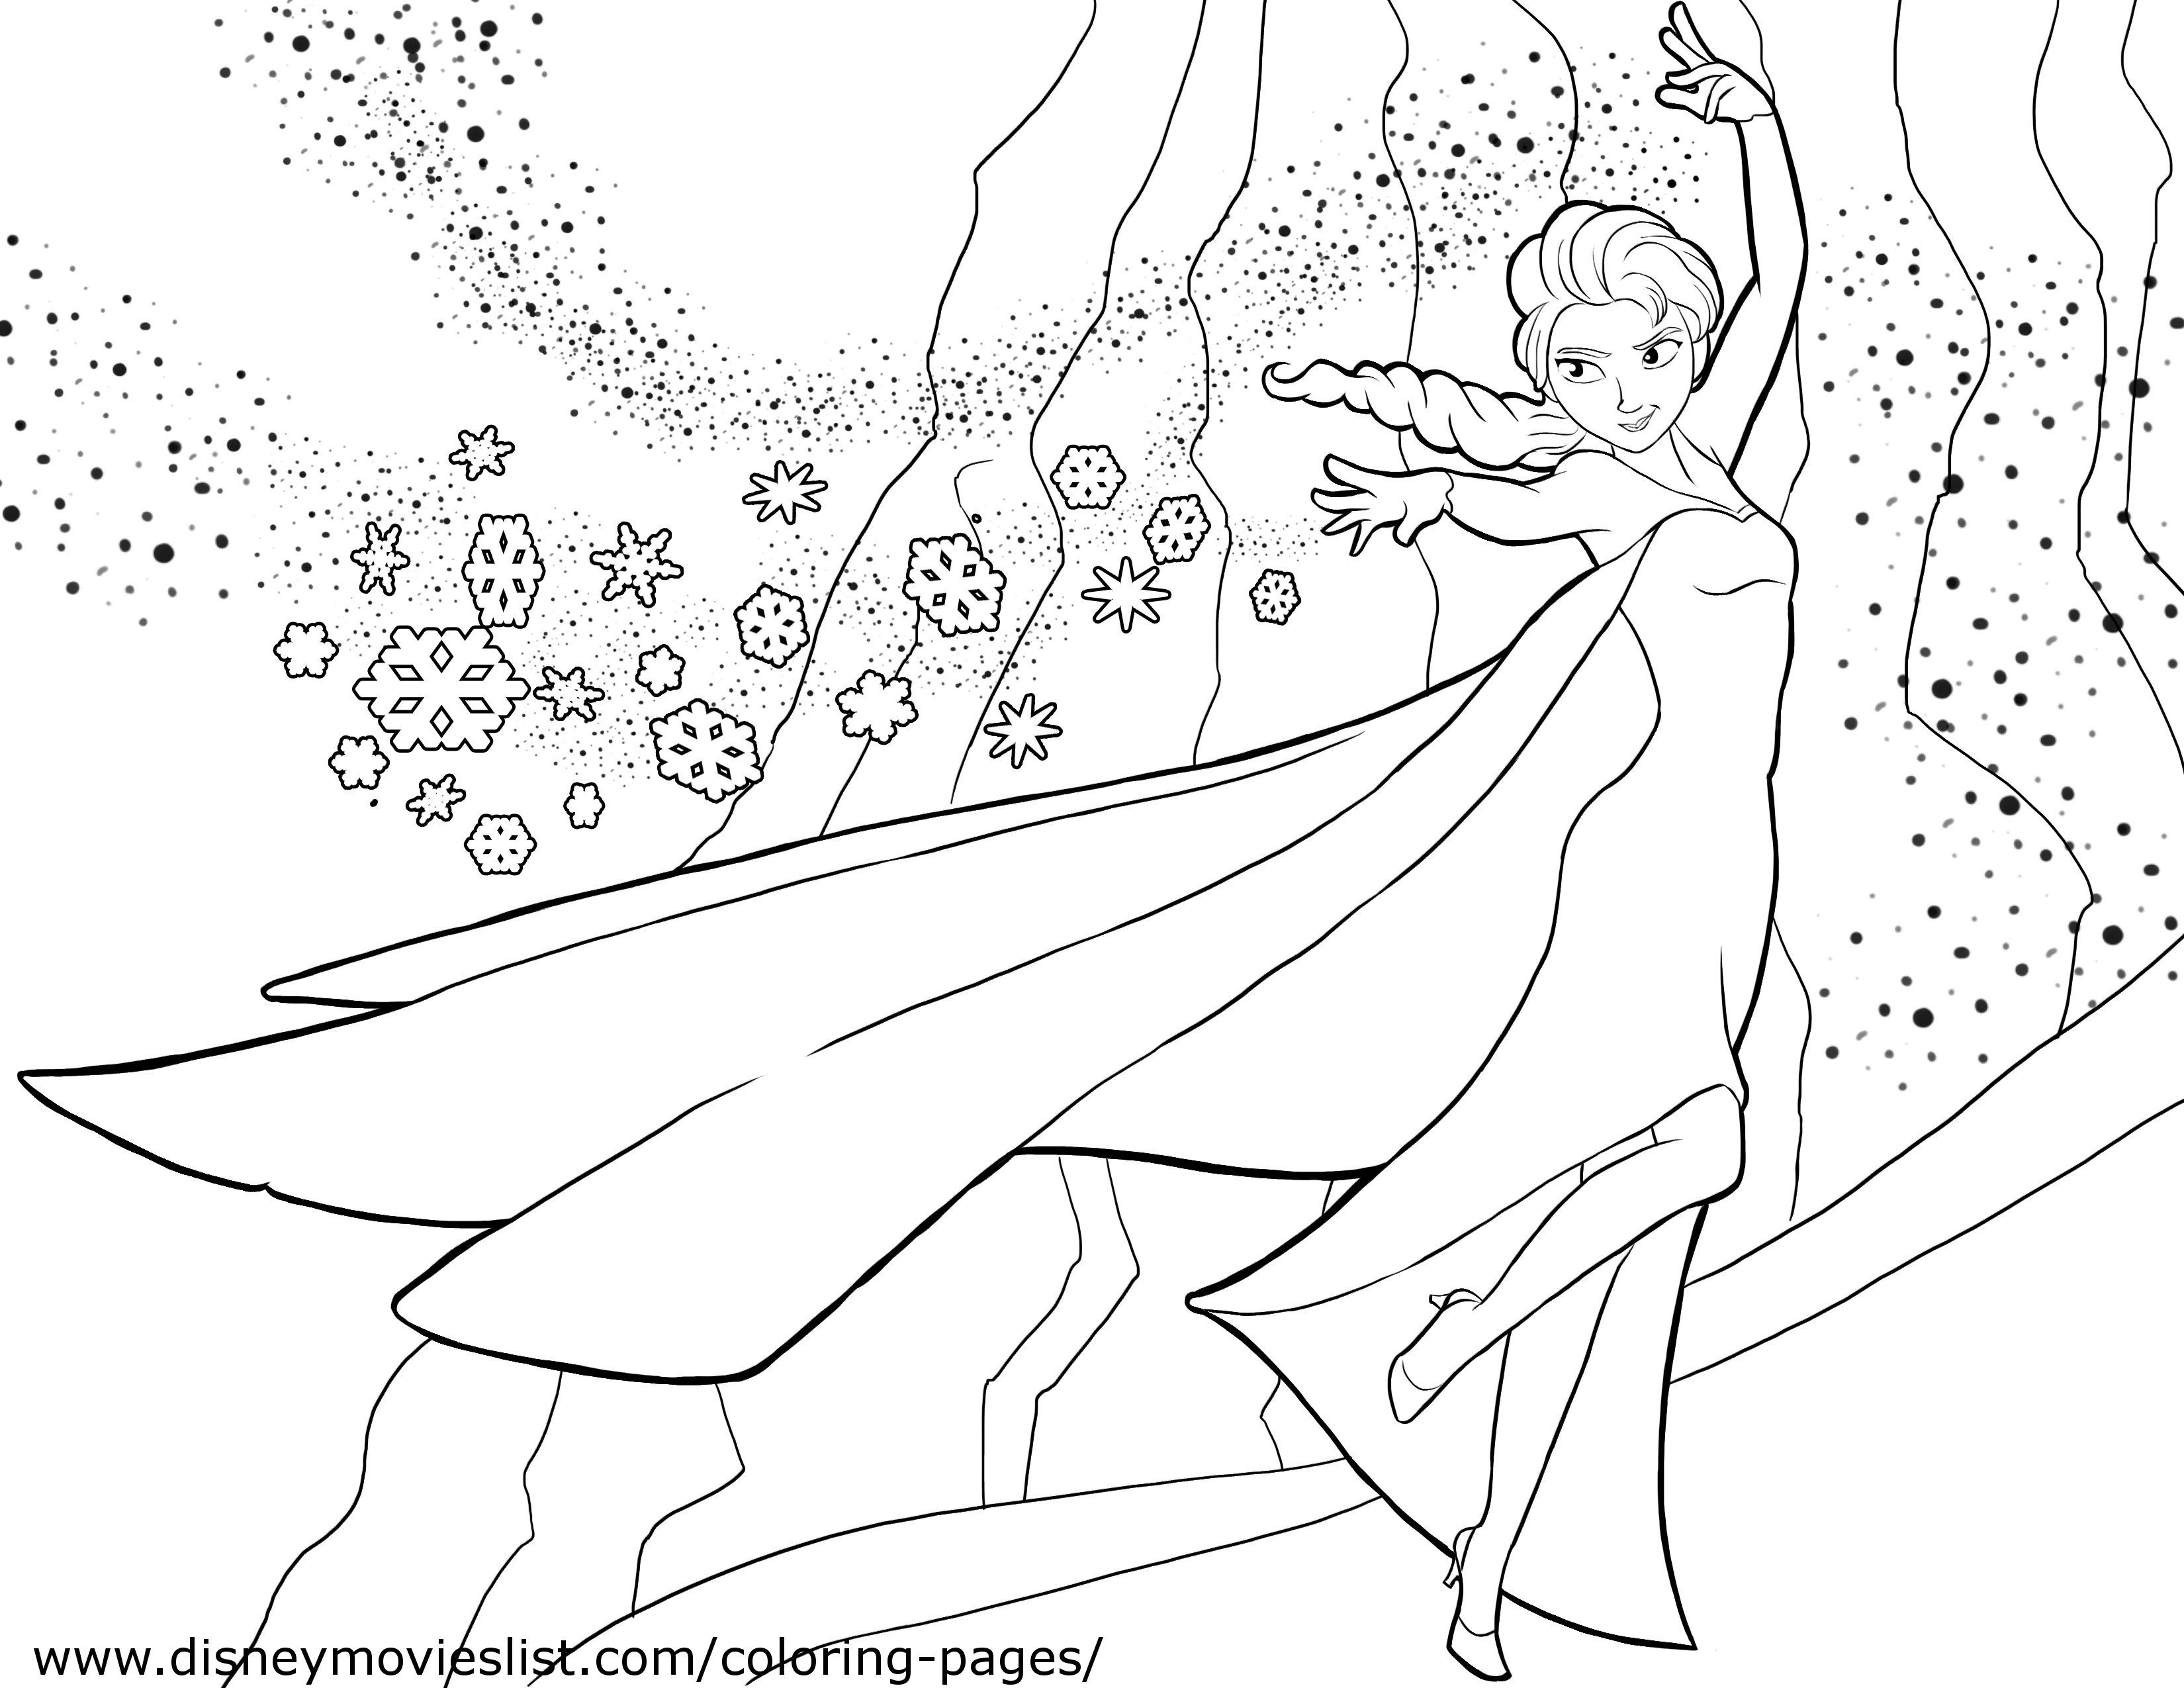 Disney s frozen coloring pages free disney printable frozen color page